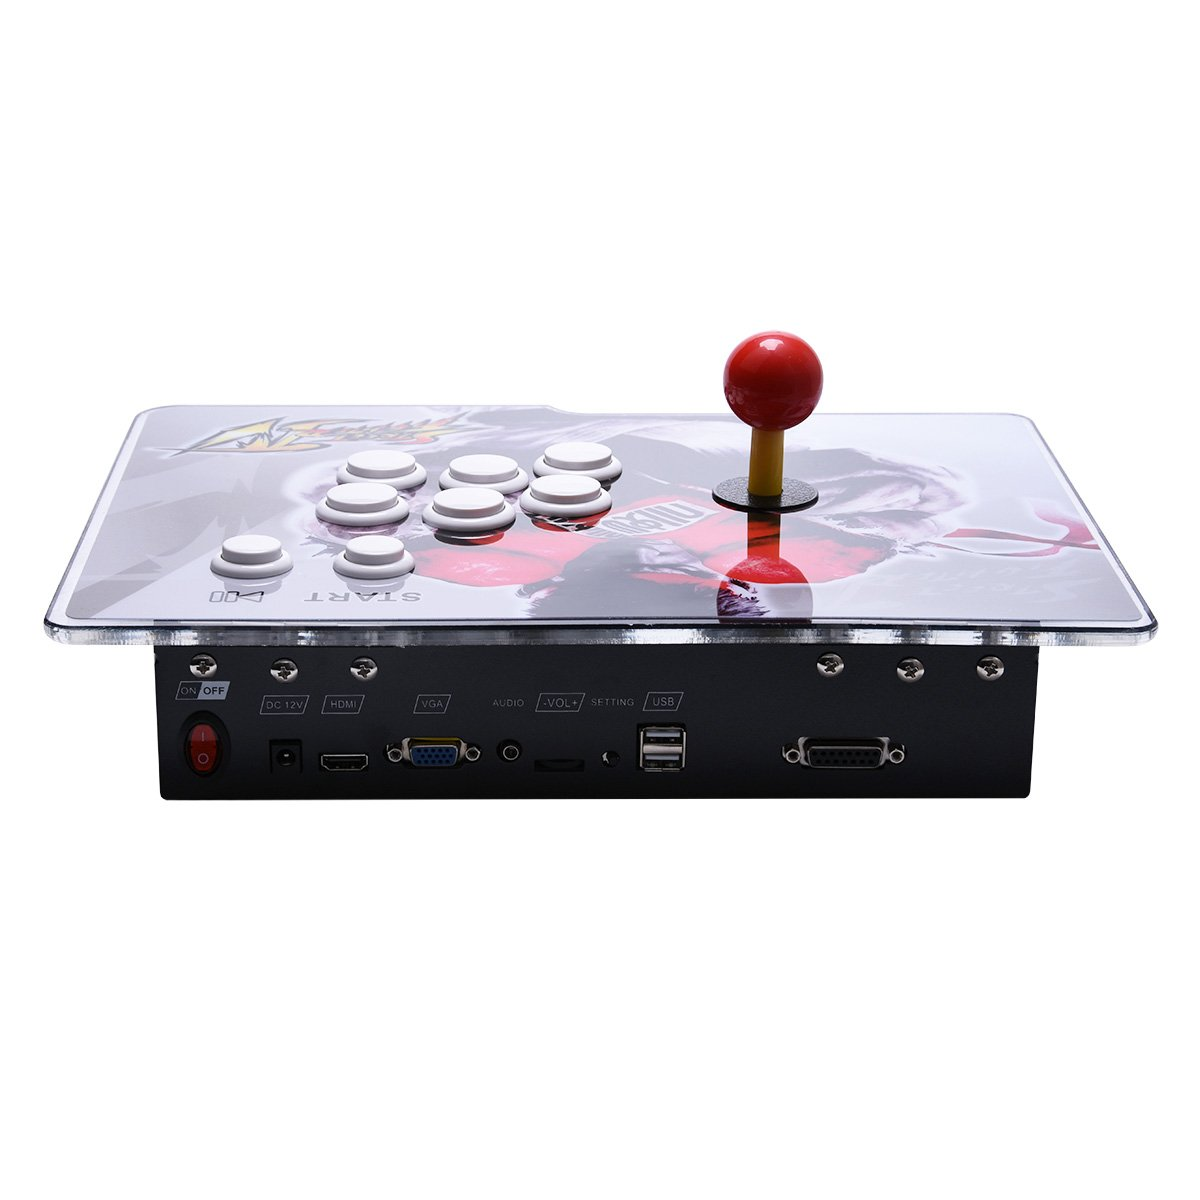 Yang HD Arcade Video Game Console Machine, 1299 Games, 2 Players 2 Single Consoles Pandora's Box 5S Multi Player Home Arcade, 1299 Games All in 1, Non-Jamma HDMI VGA by Yang (Image #4)